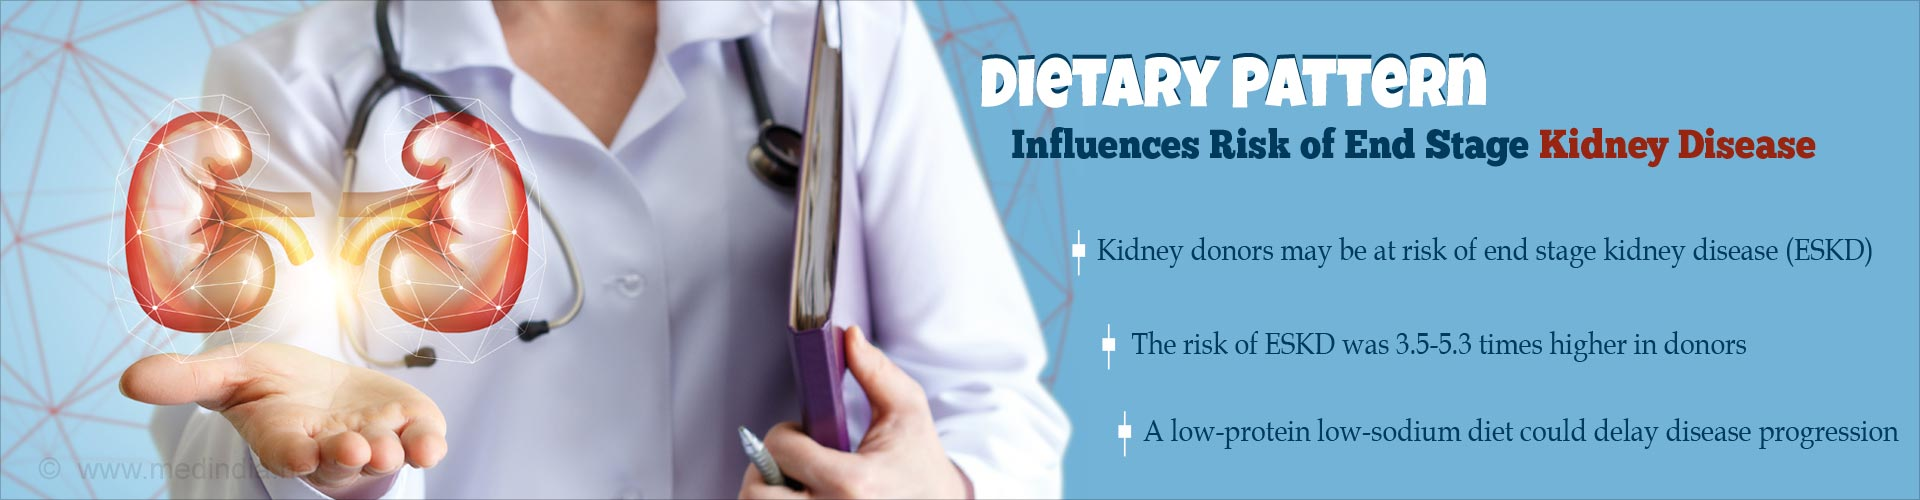 Dietary pattern influences risk of end stage kidney disease - Kidney donors may be at risk of end stage kidney disease (ESKD) - The risk of ESKR was 3.5-5.3 times higher in donors - a low-protein low-sodium diet could delay disease progression